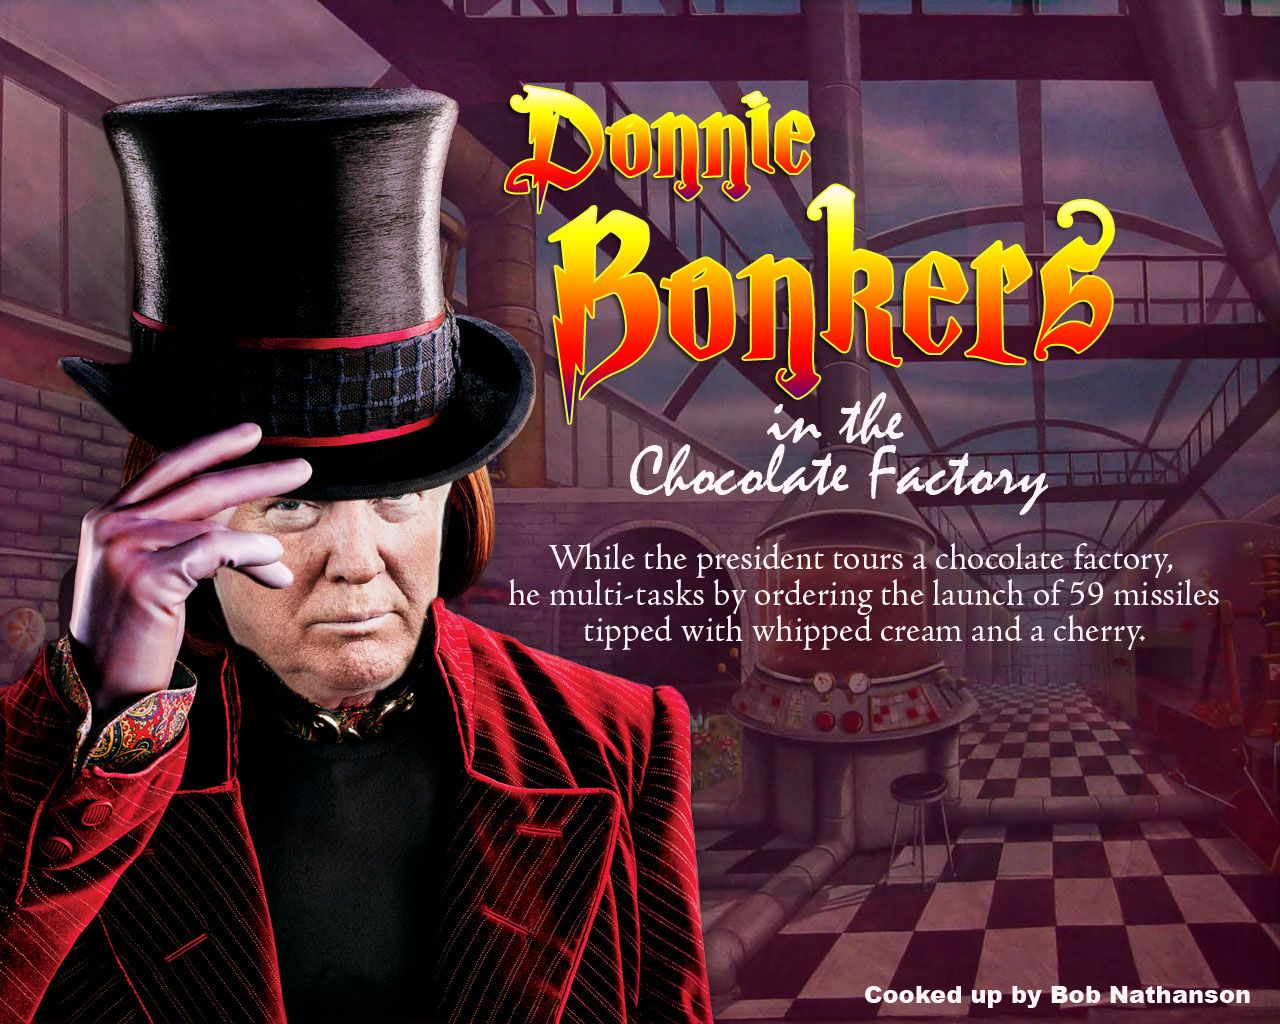 Donnie Bonkers in the Chocolate Factory- Political humor featuring ...